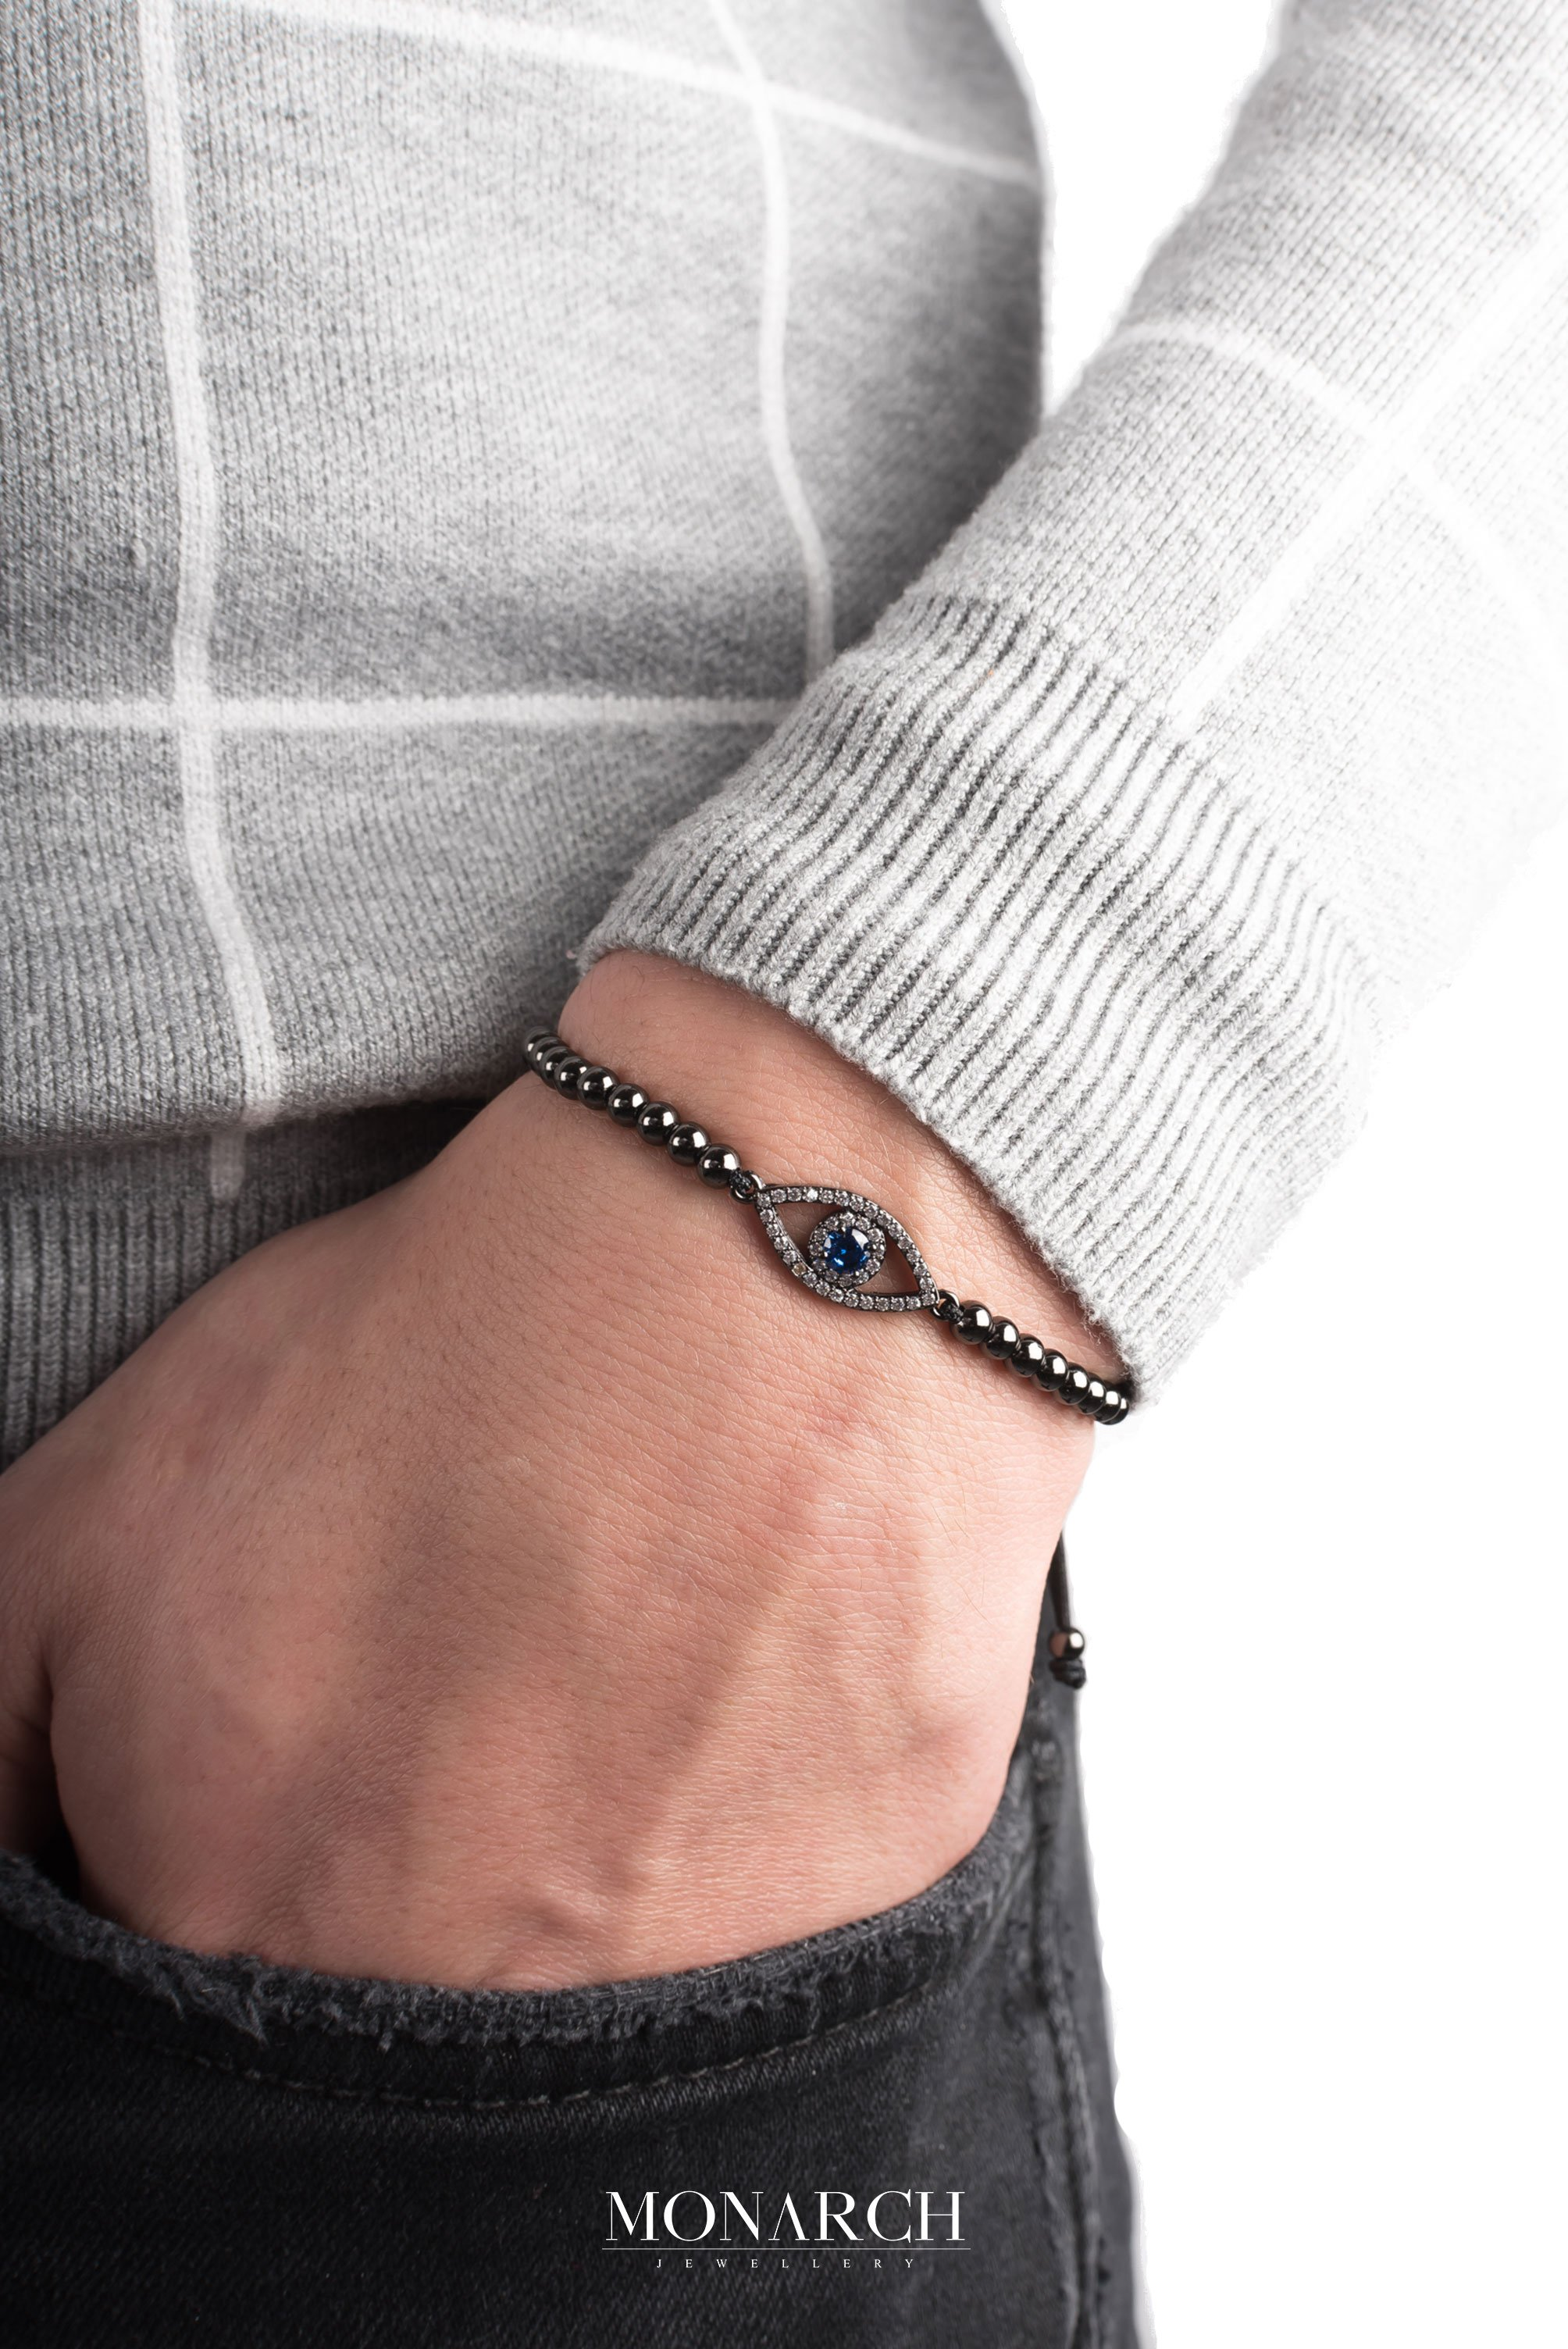 black luxury bracelet for man, monarch jewellery MA63BFTE